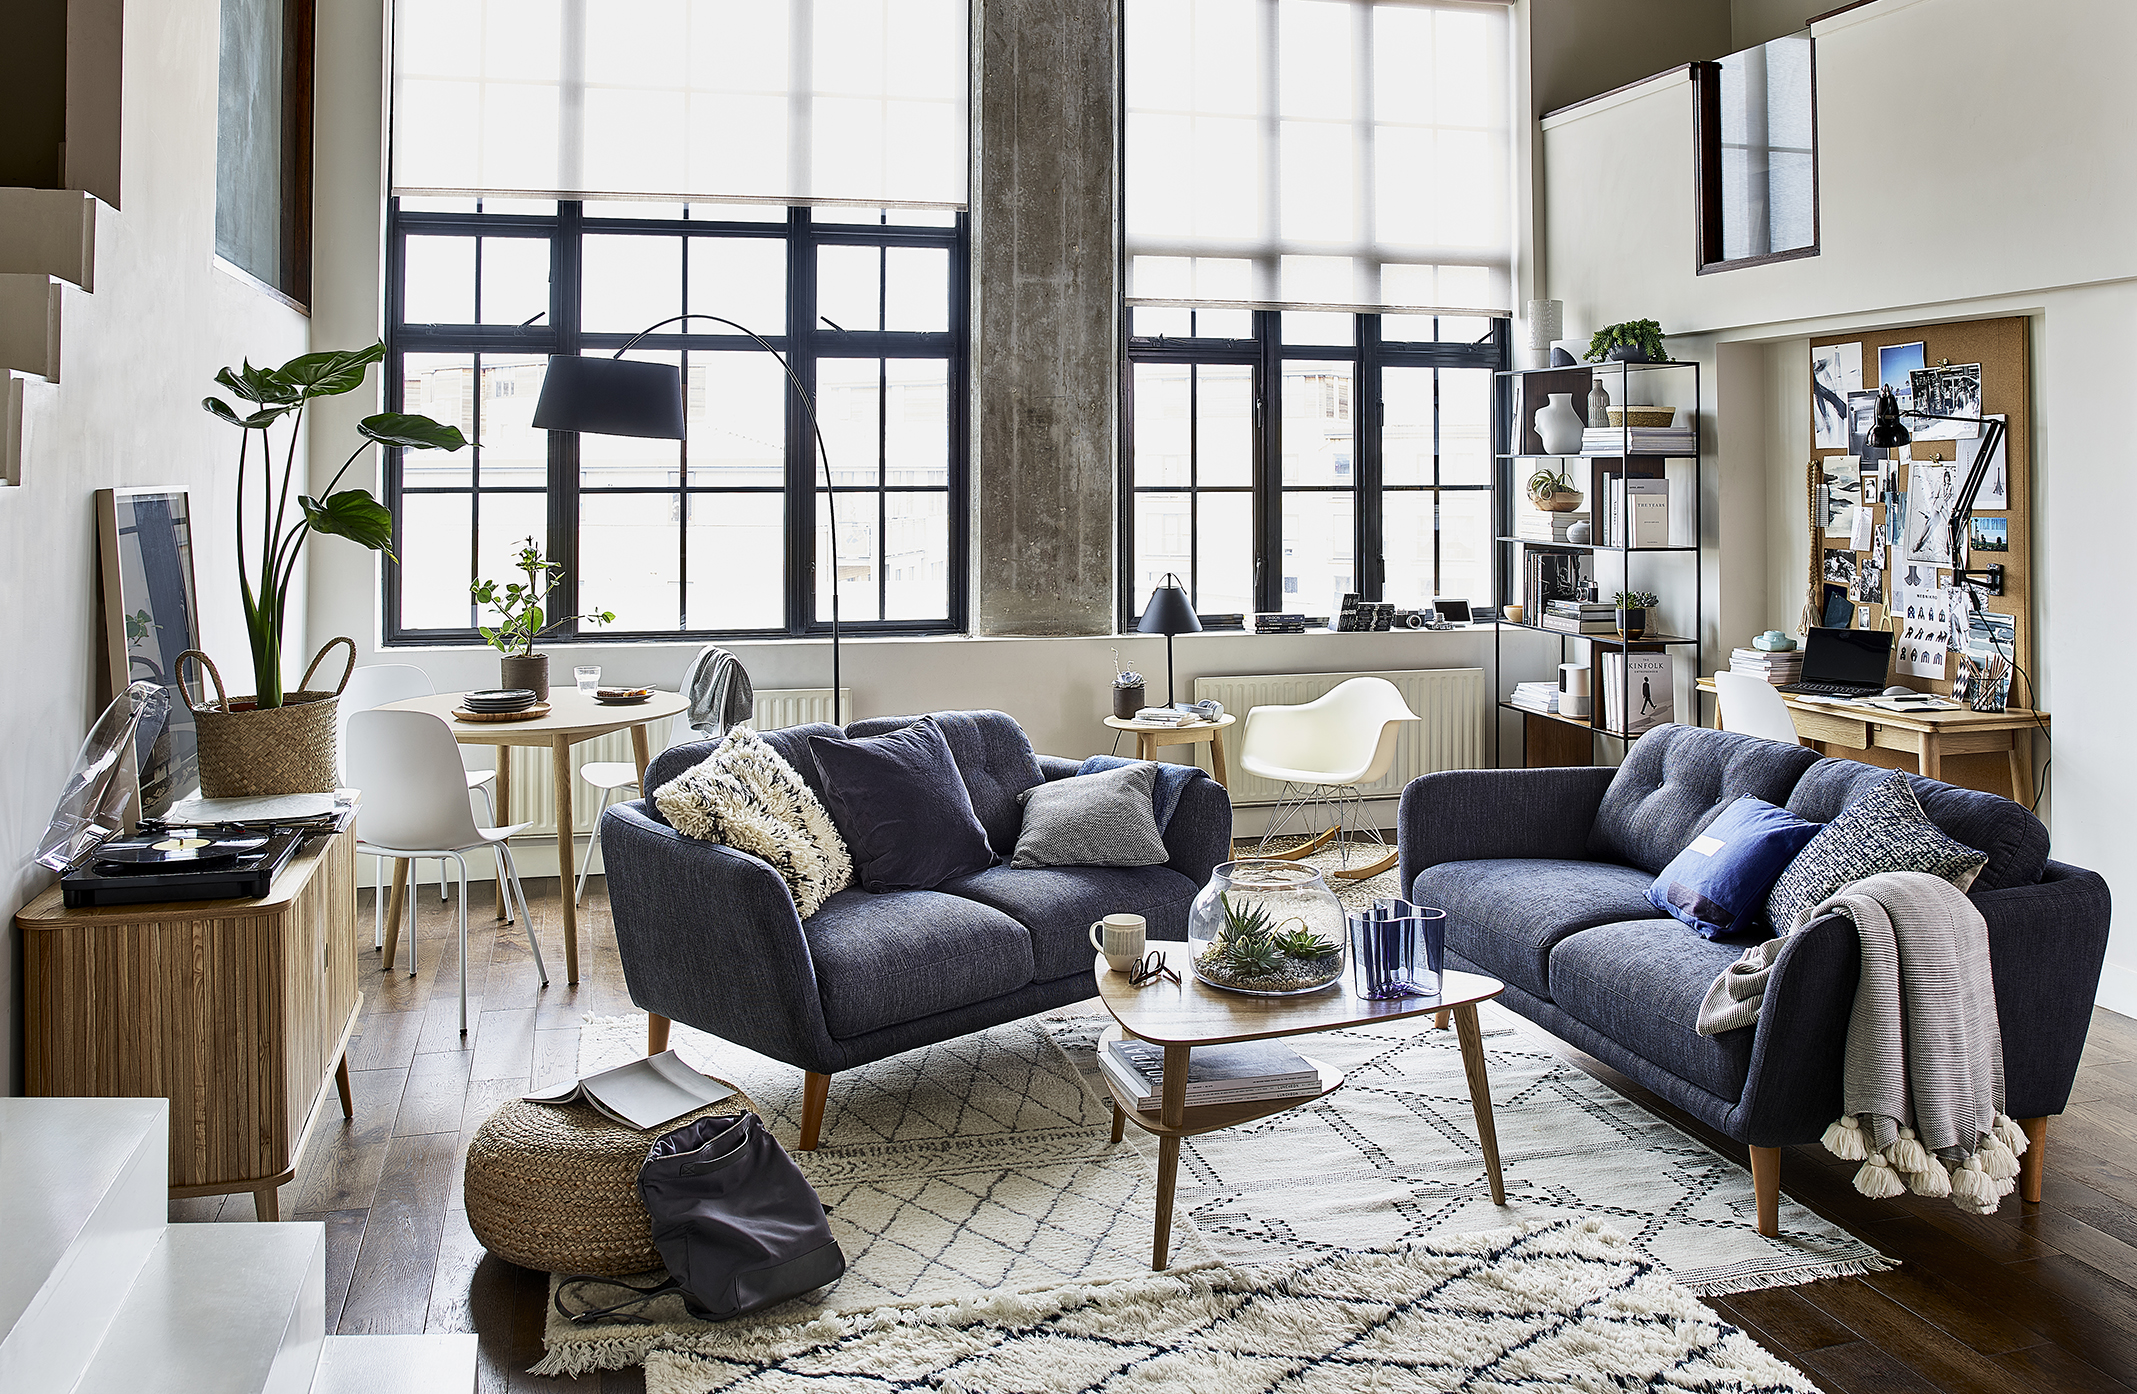 Living Room Layout Ideas 7 Ways To Make The Most Of Your